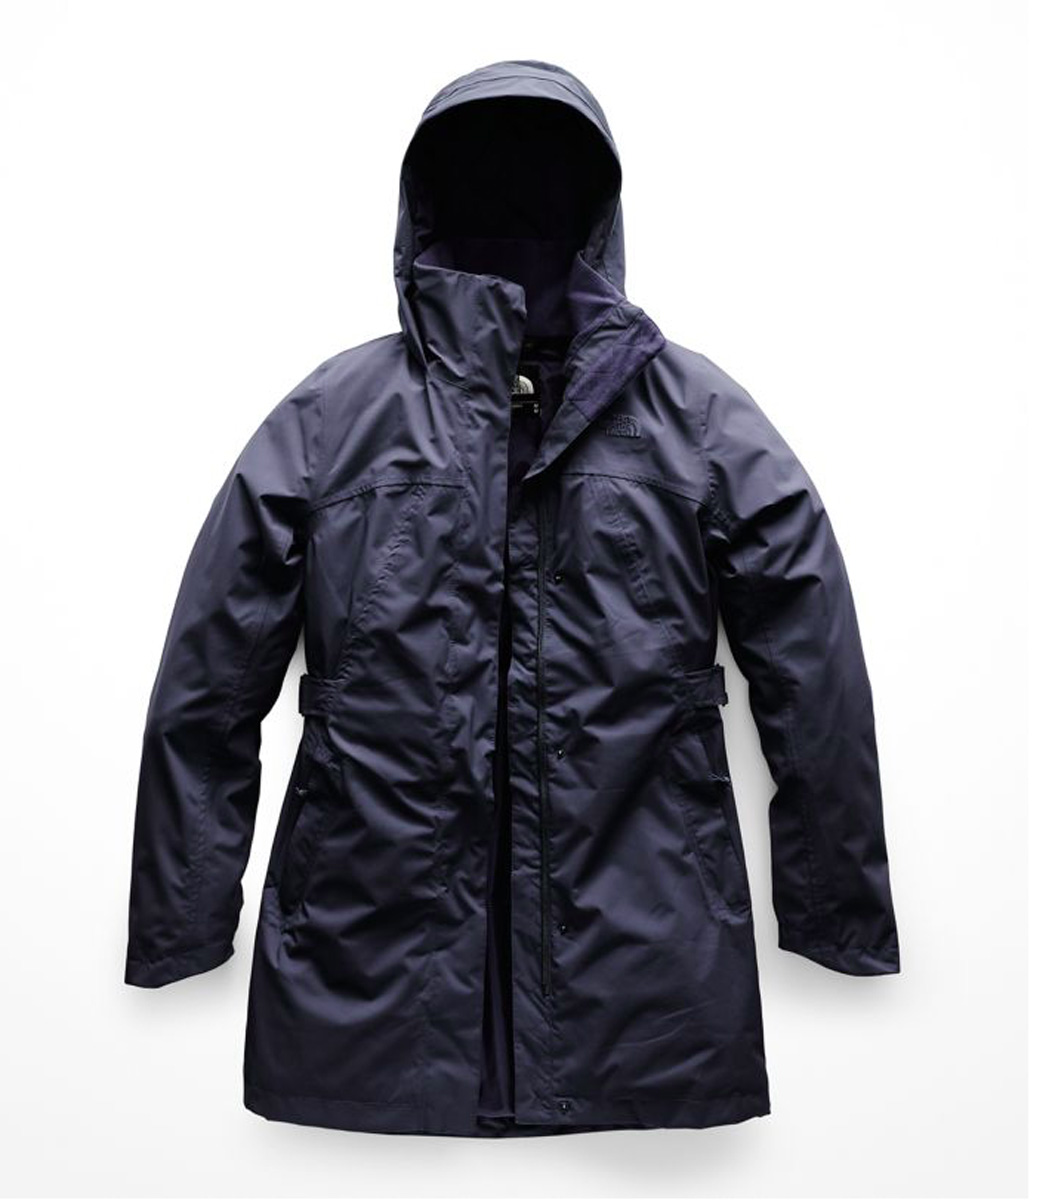 OUTERWEAR - THE NORTH FACE - URBAN EXPLORATION - RAIN